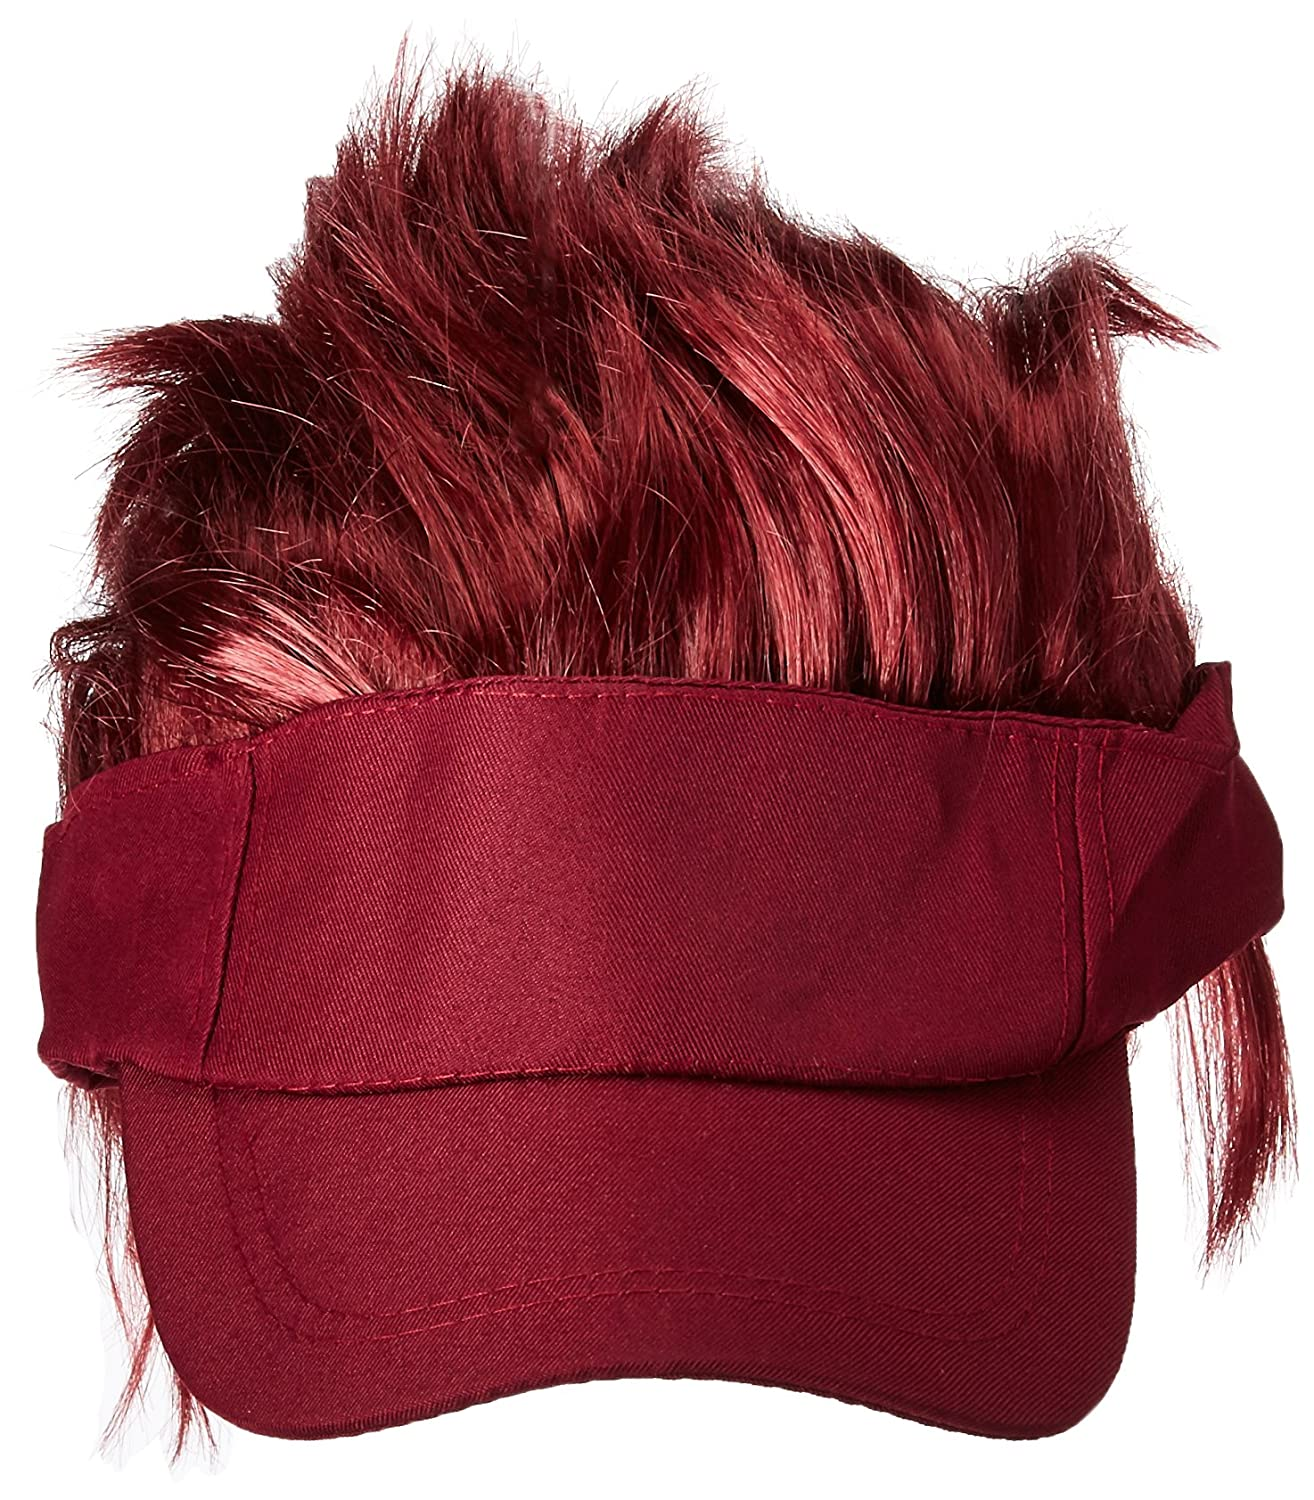 Amscan Burgundy Spiked Visor Hat Party Accessory TradeMart Inc 3 Ct 250539.91